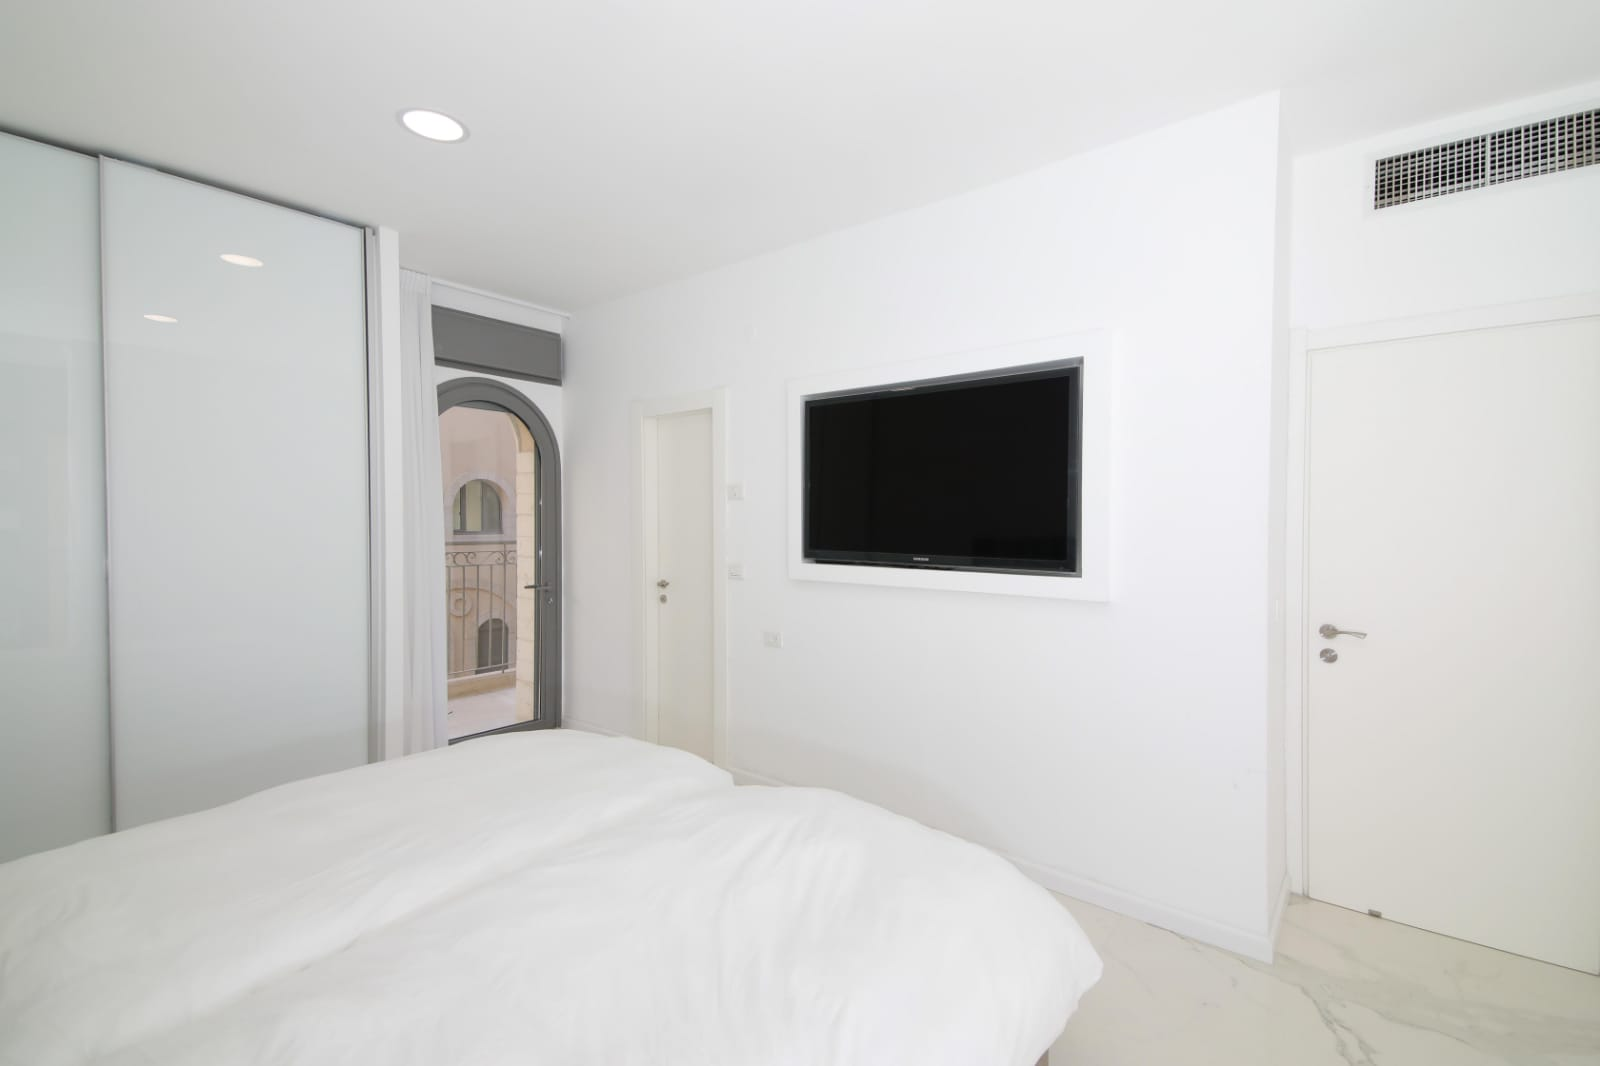 2.New 4 BR Luxury City Rental  image #7